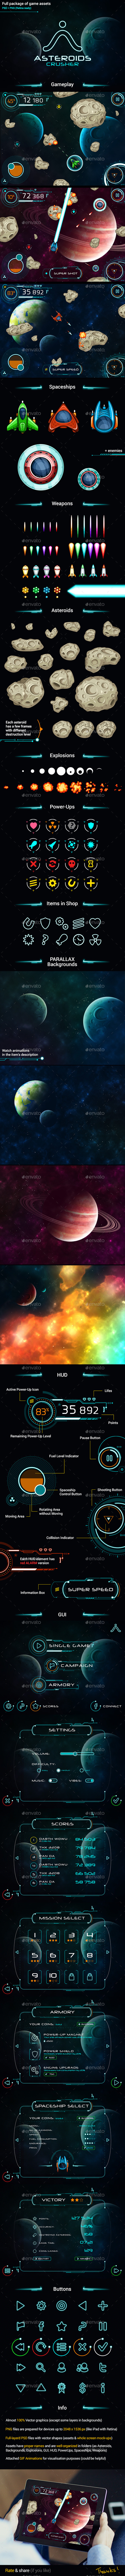 GraphicRiver Game Assets for Asteroids Crusher 9695040